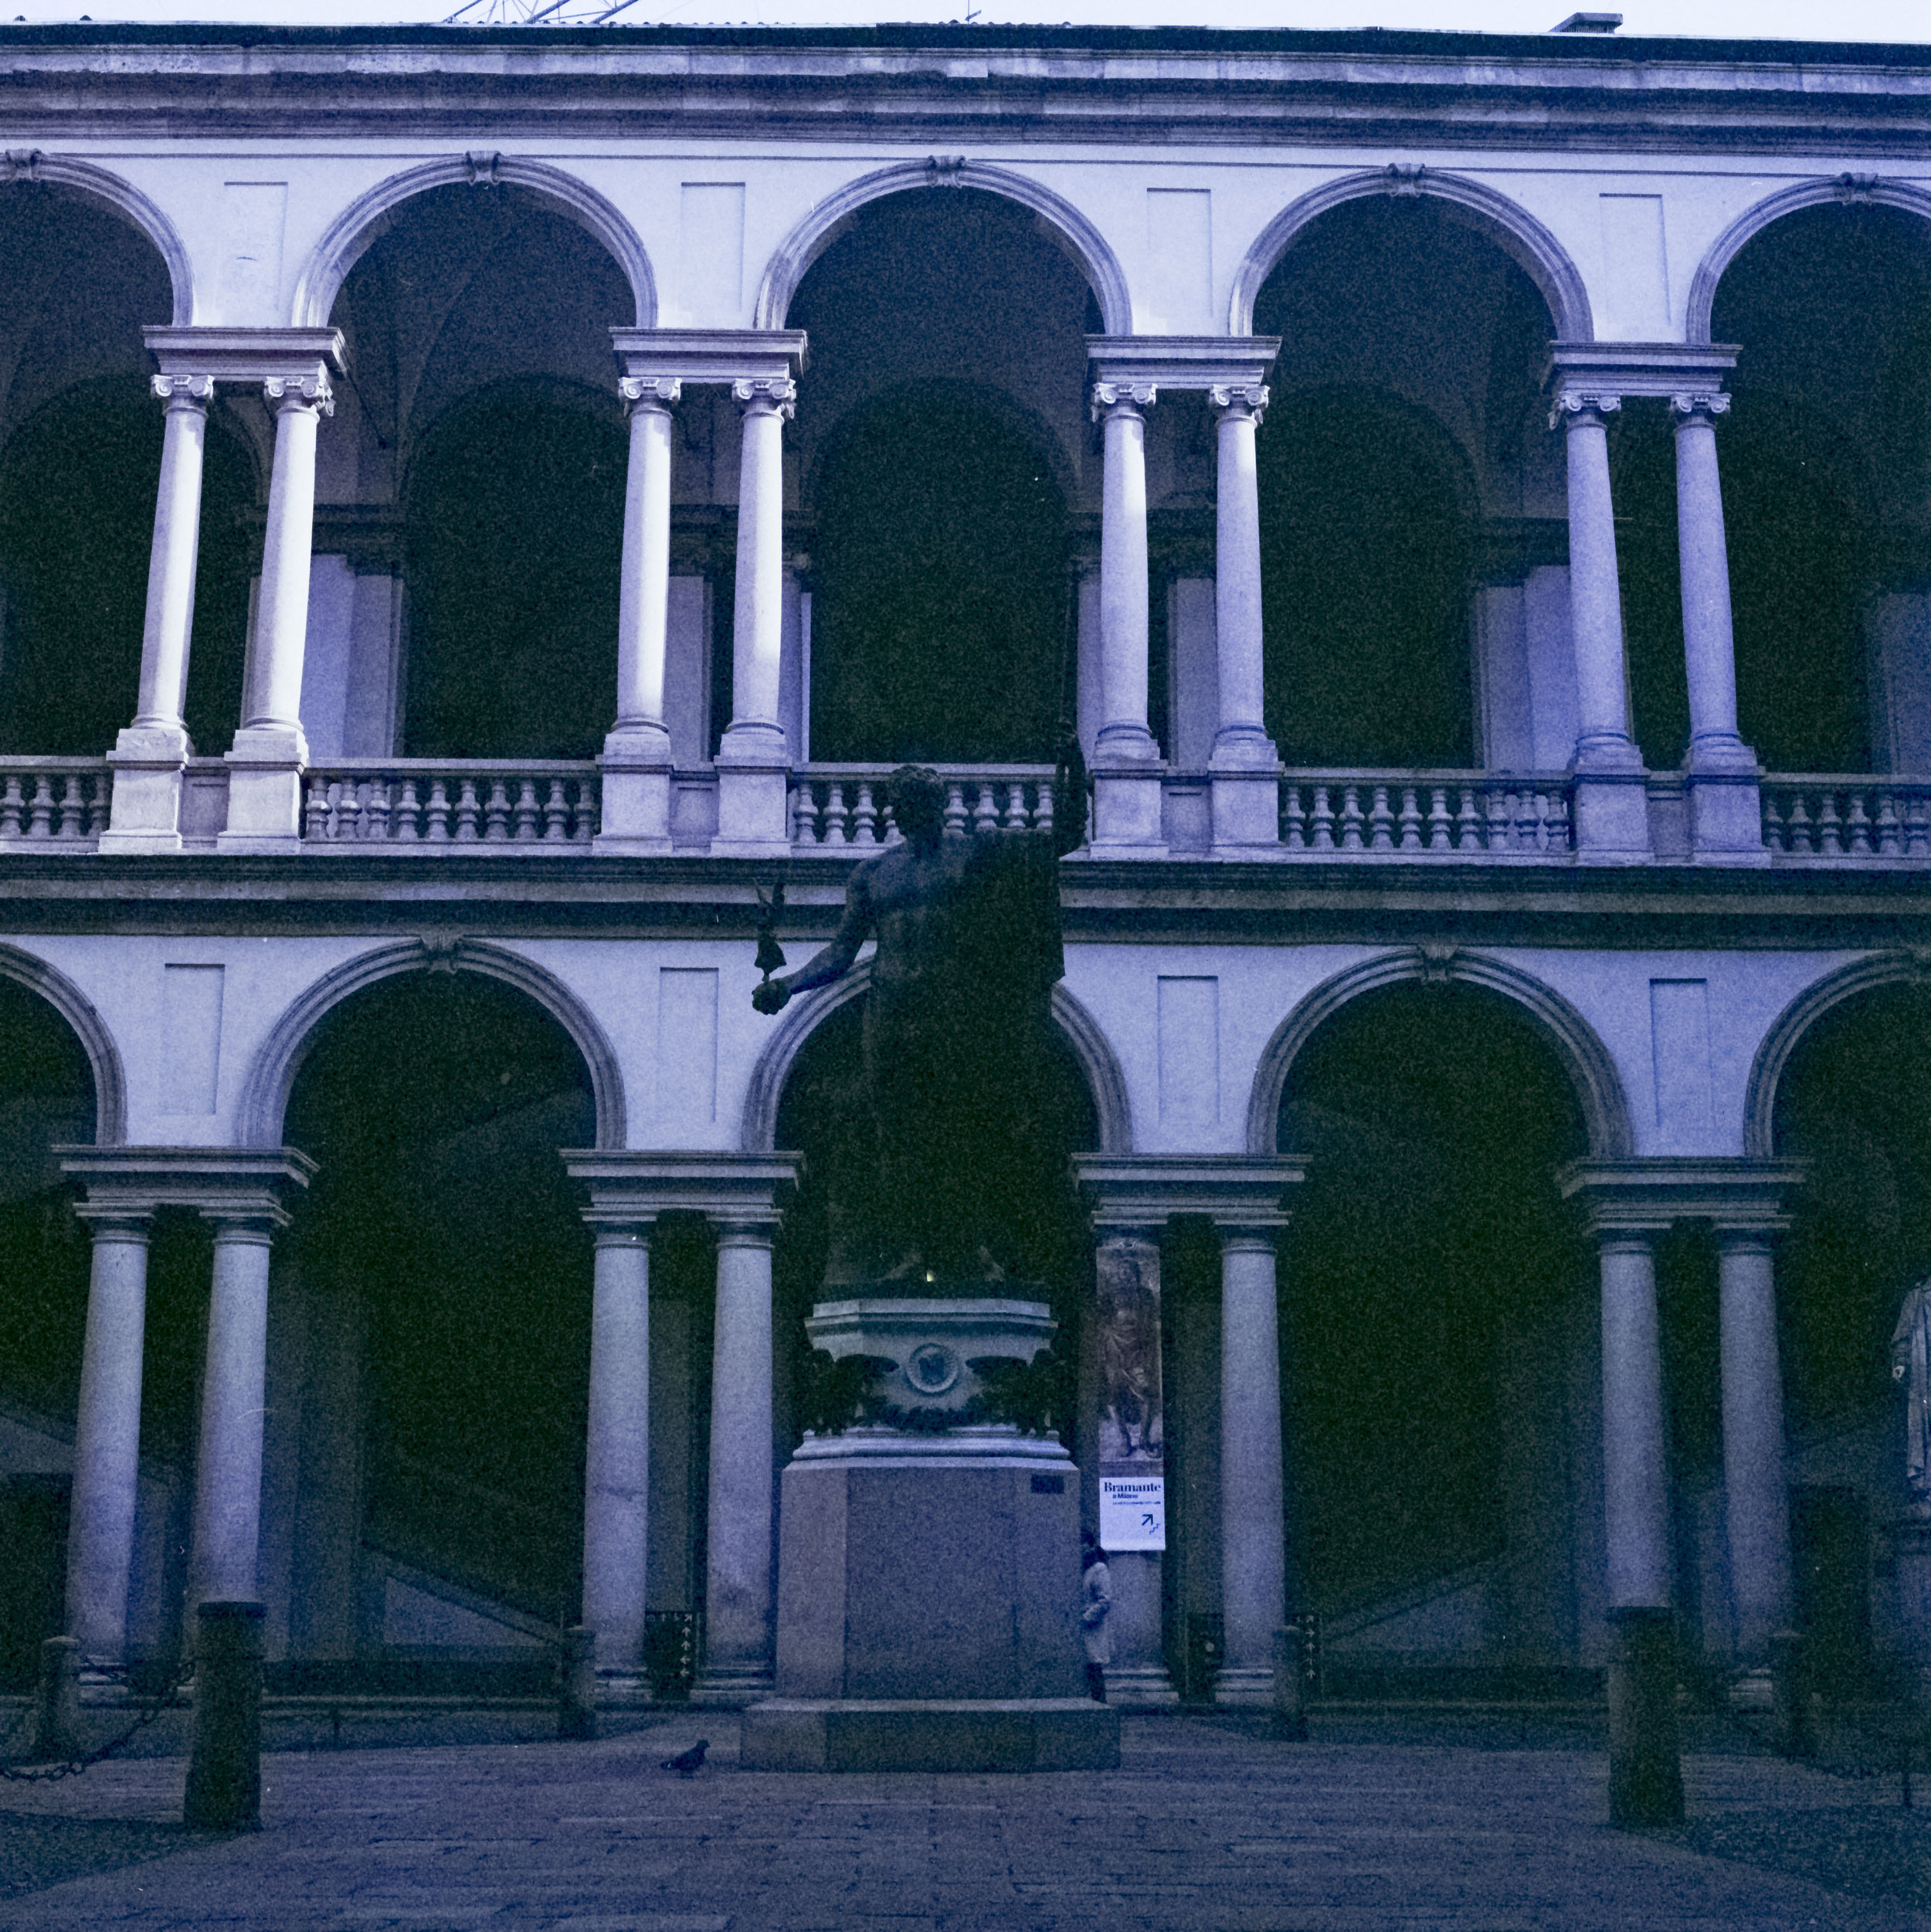 Camera: Hasselblad 500C/M  Film: Lomography CN 800  Location: Milan, Italy